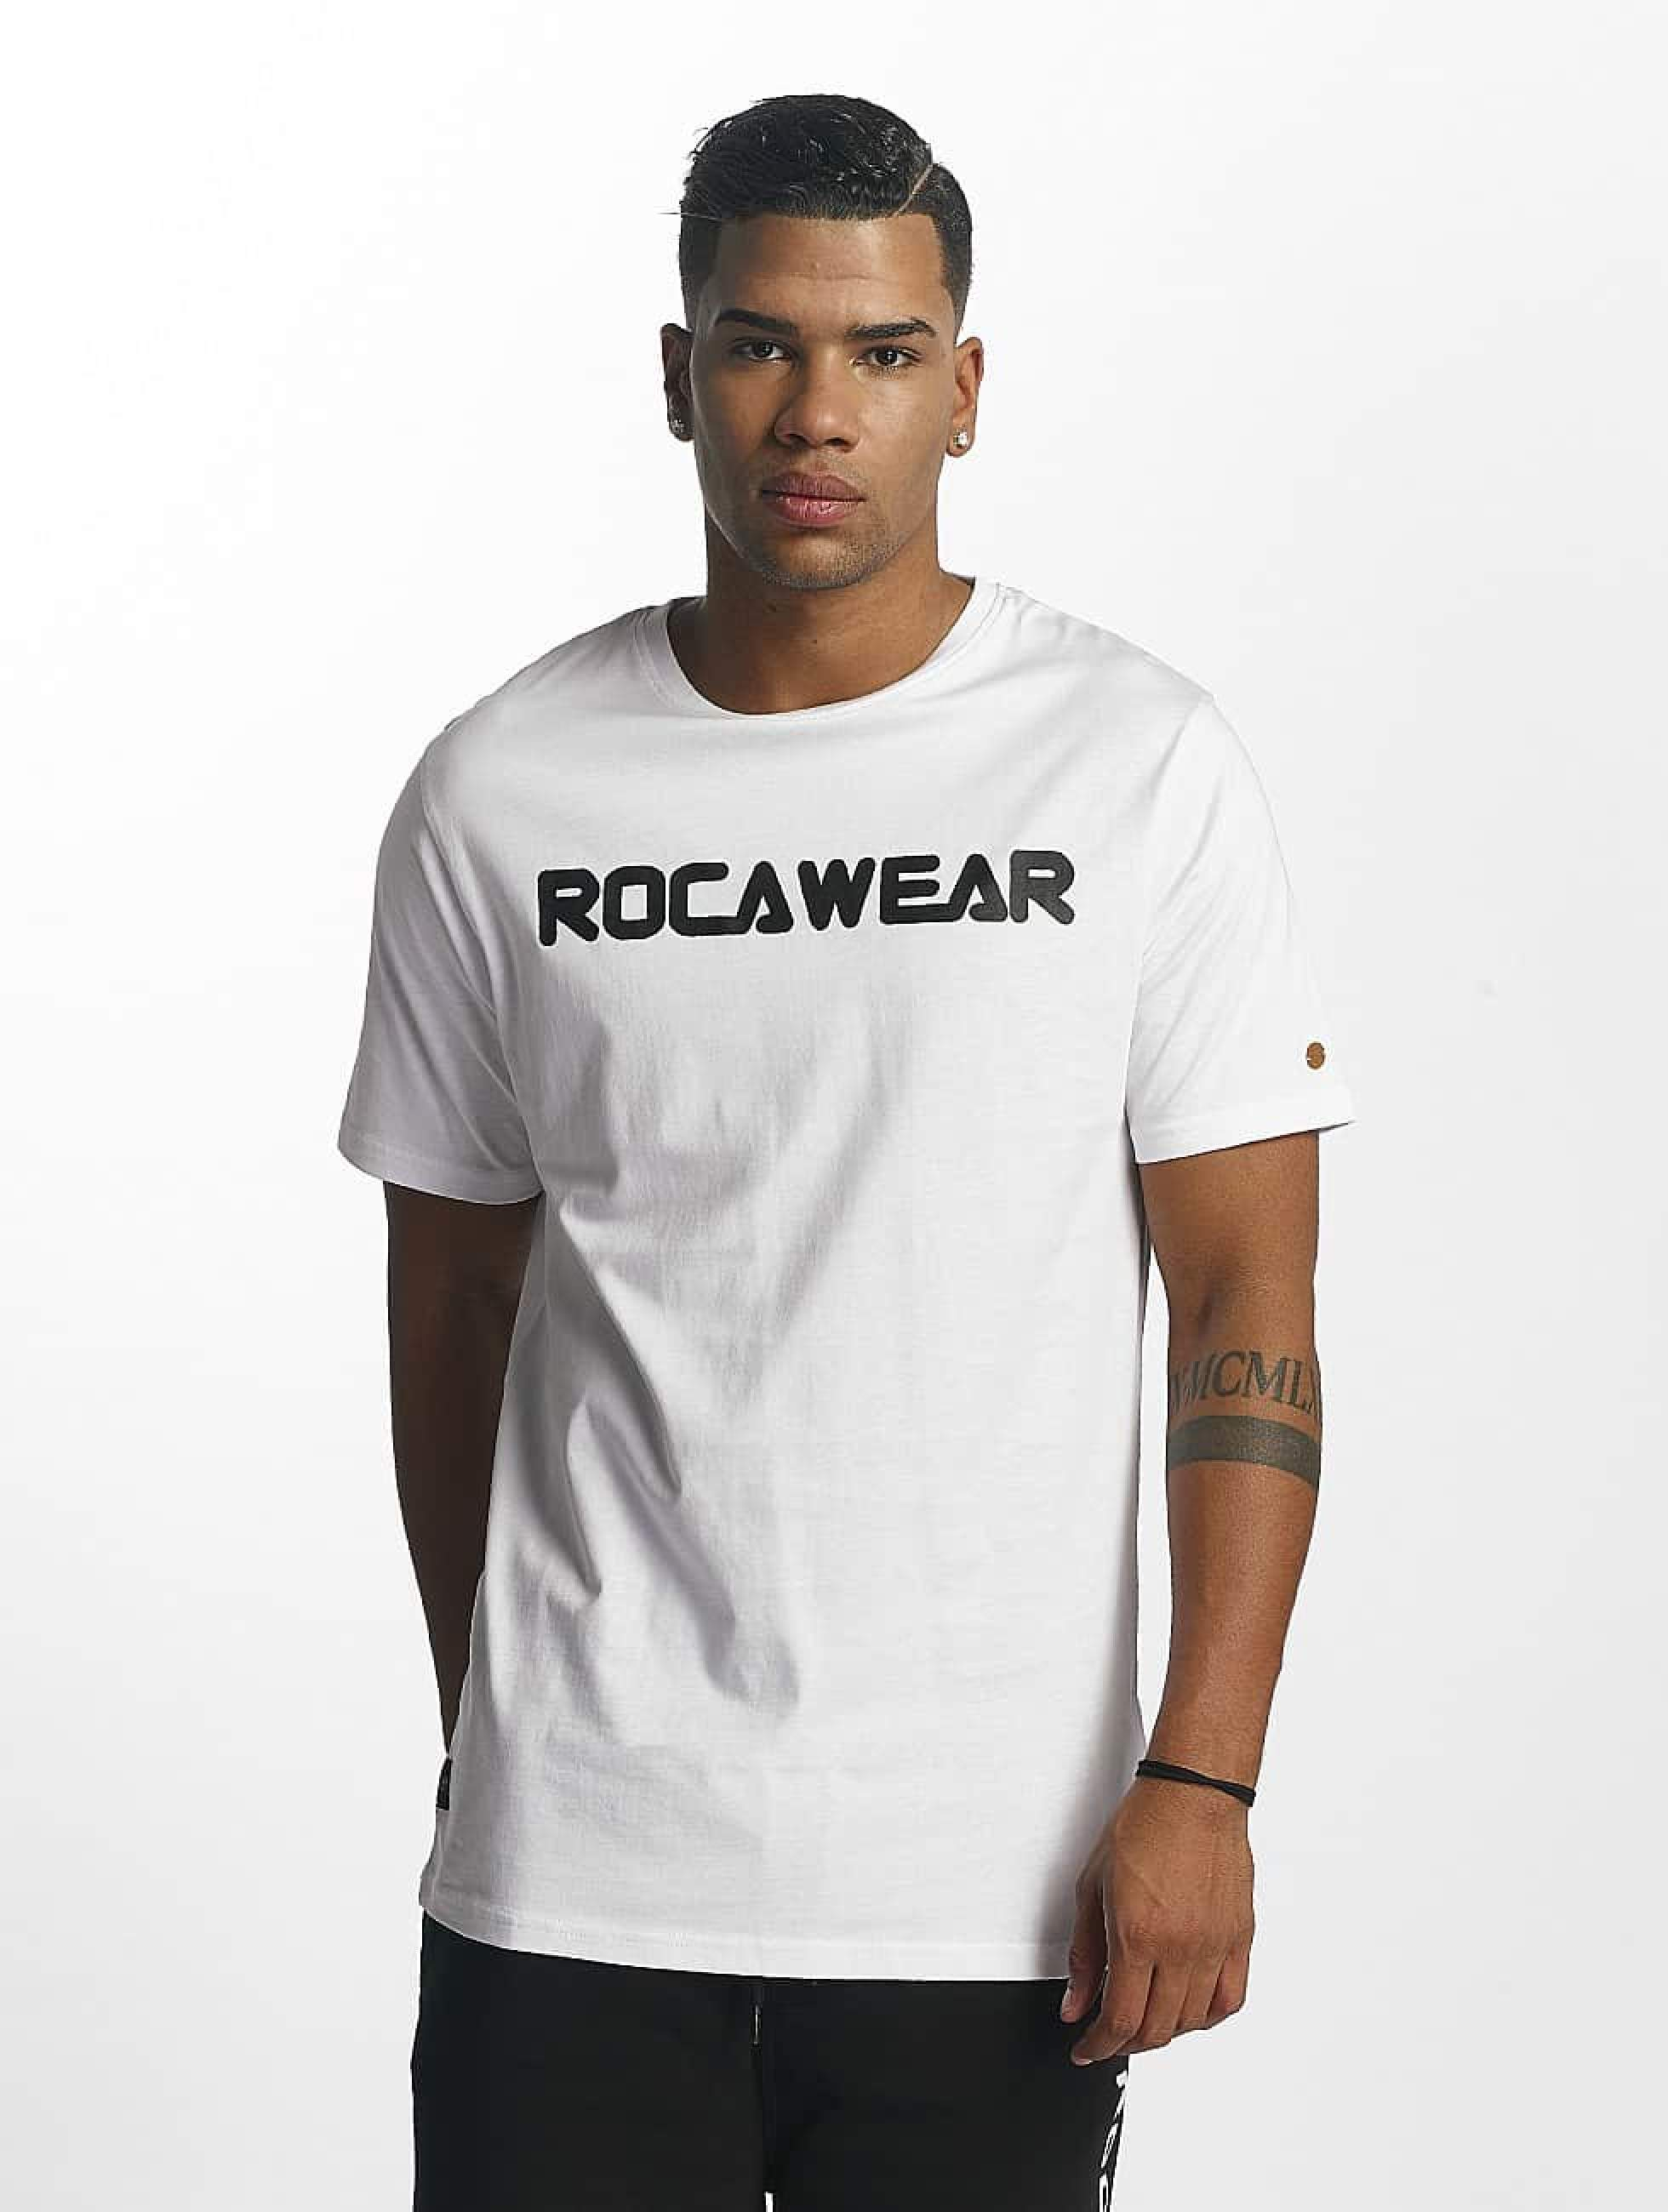 Rocawear / T-Shirt Color in white M